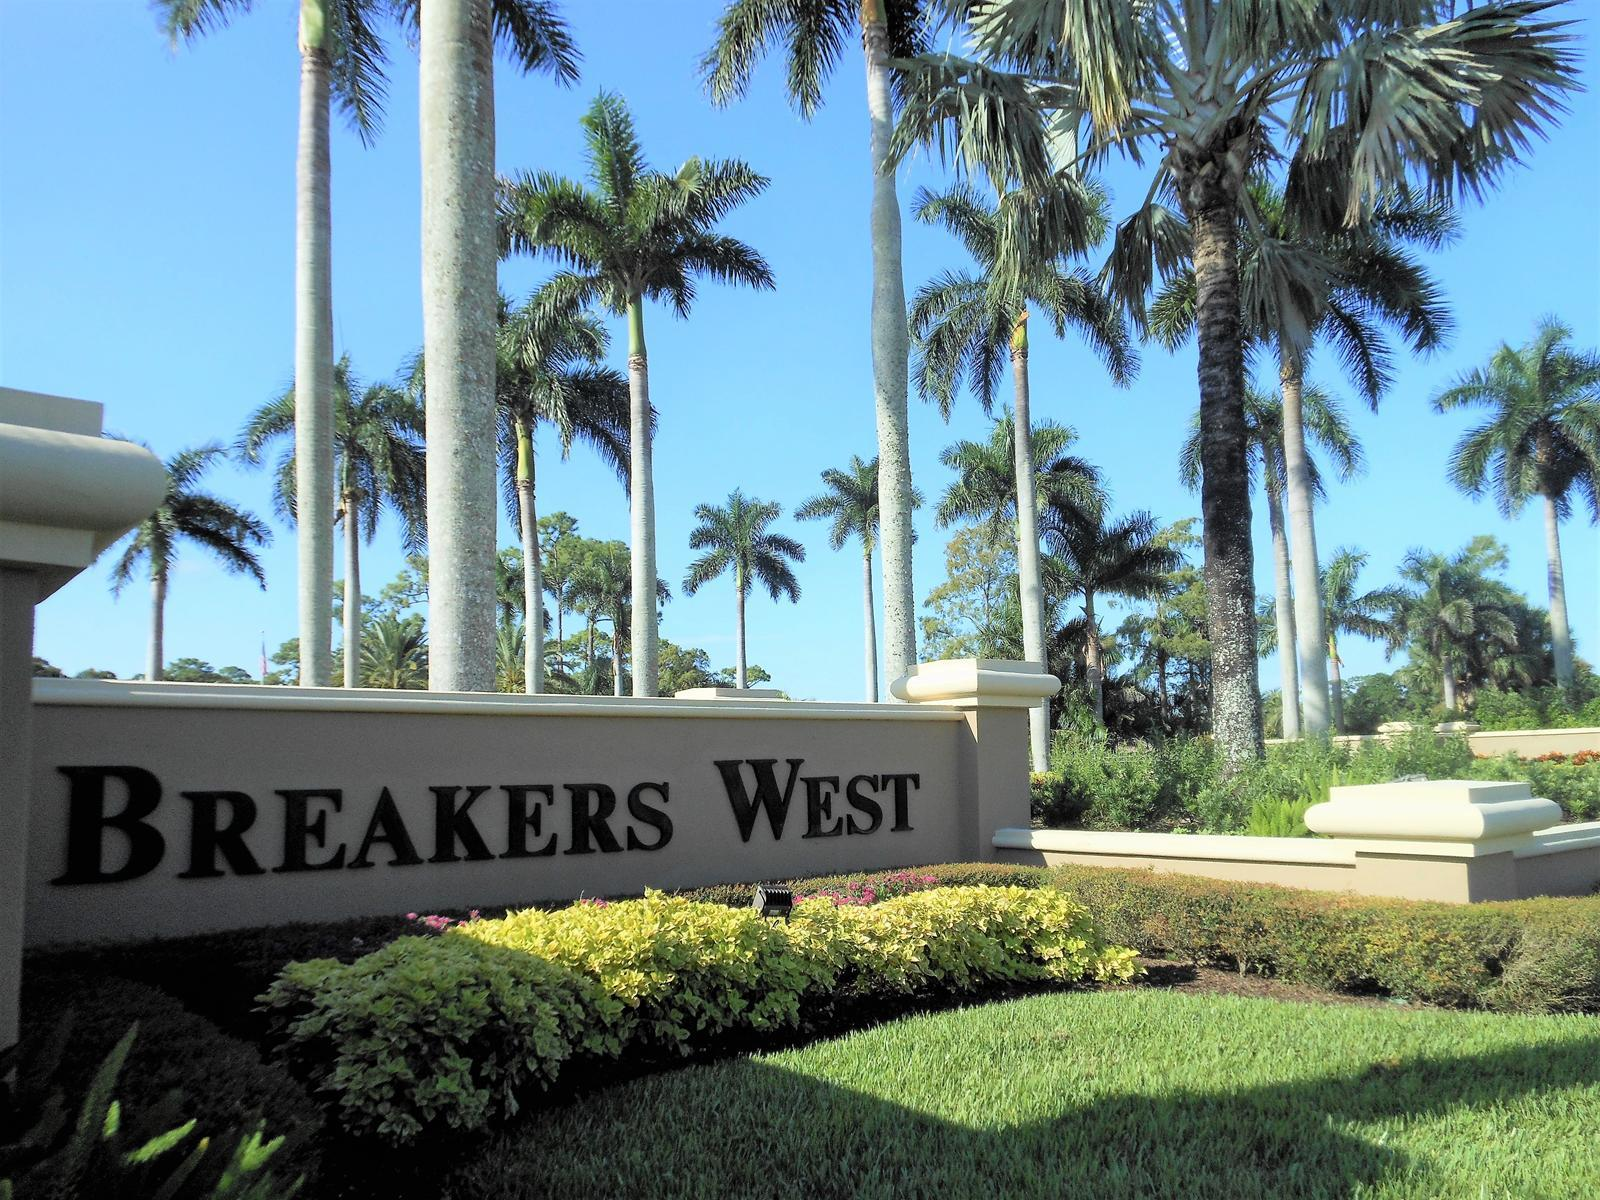 BREAKERS WEST HOMES